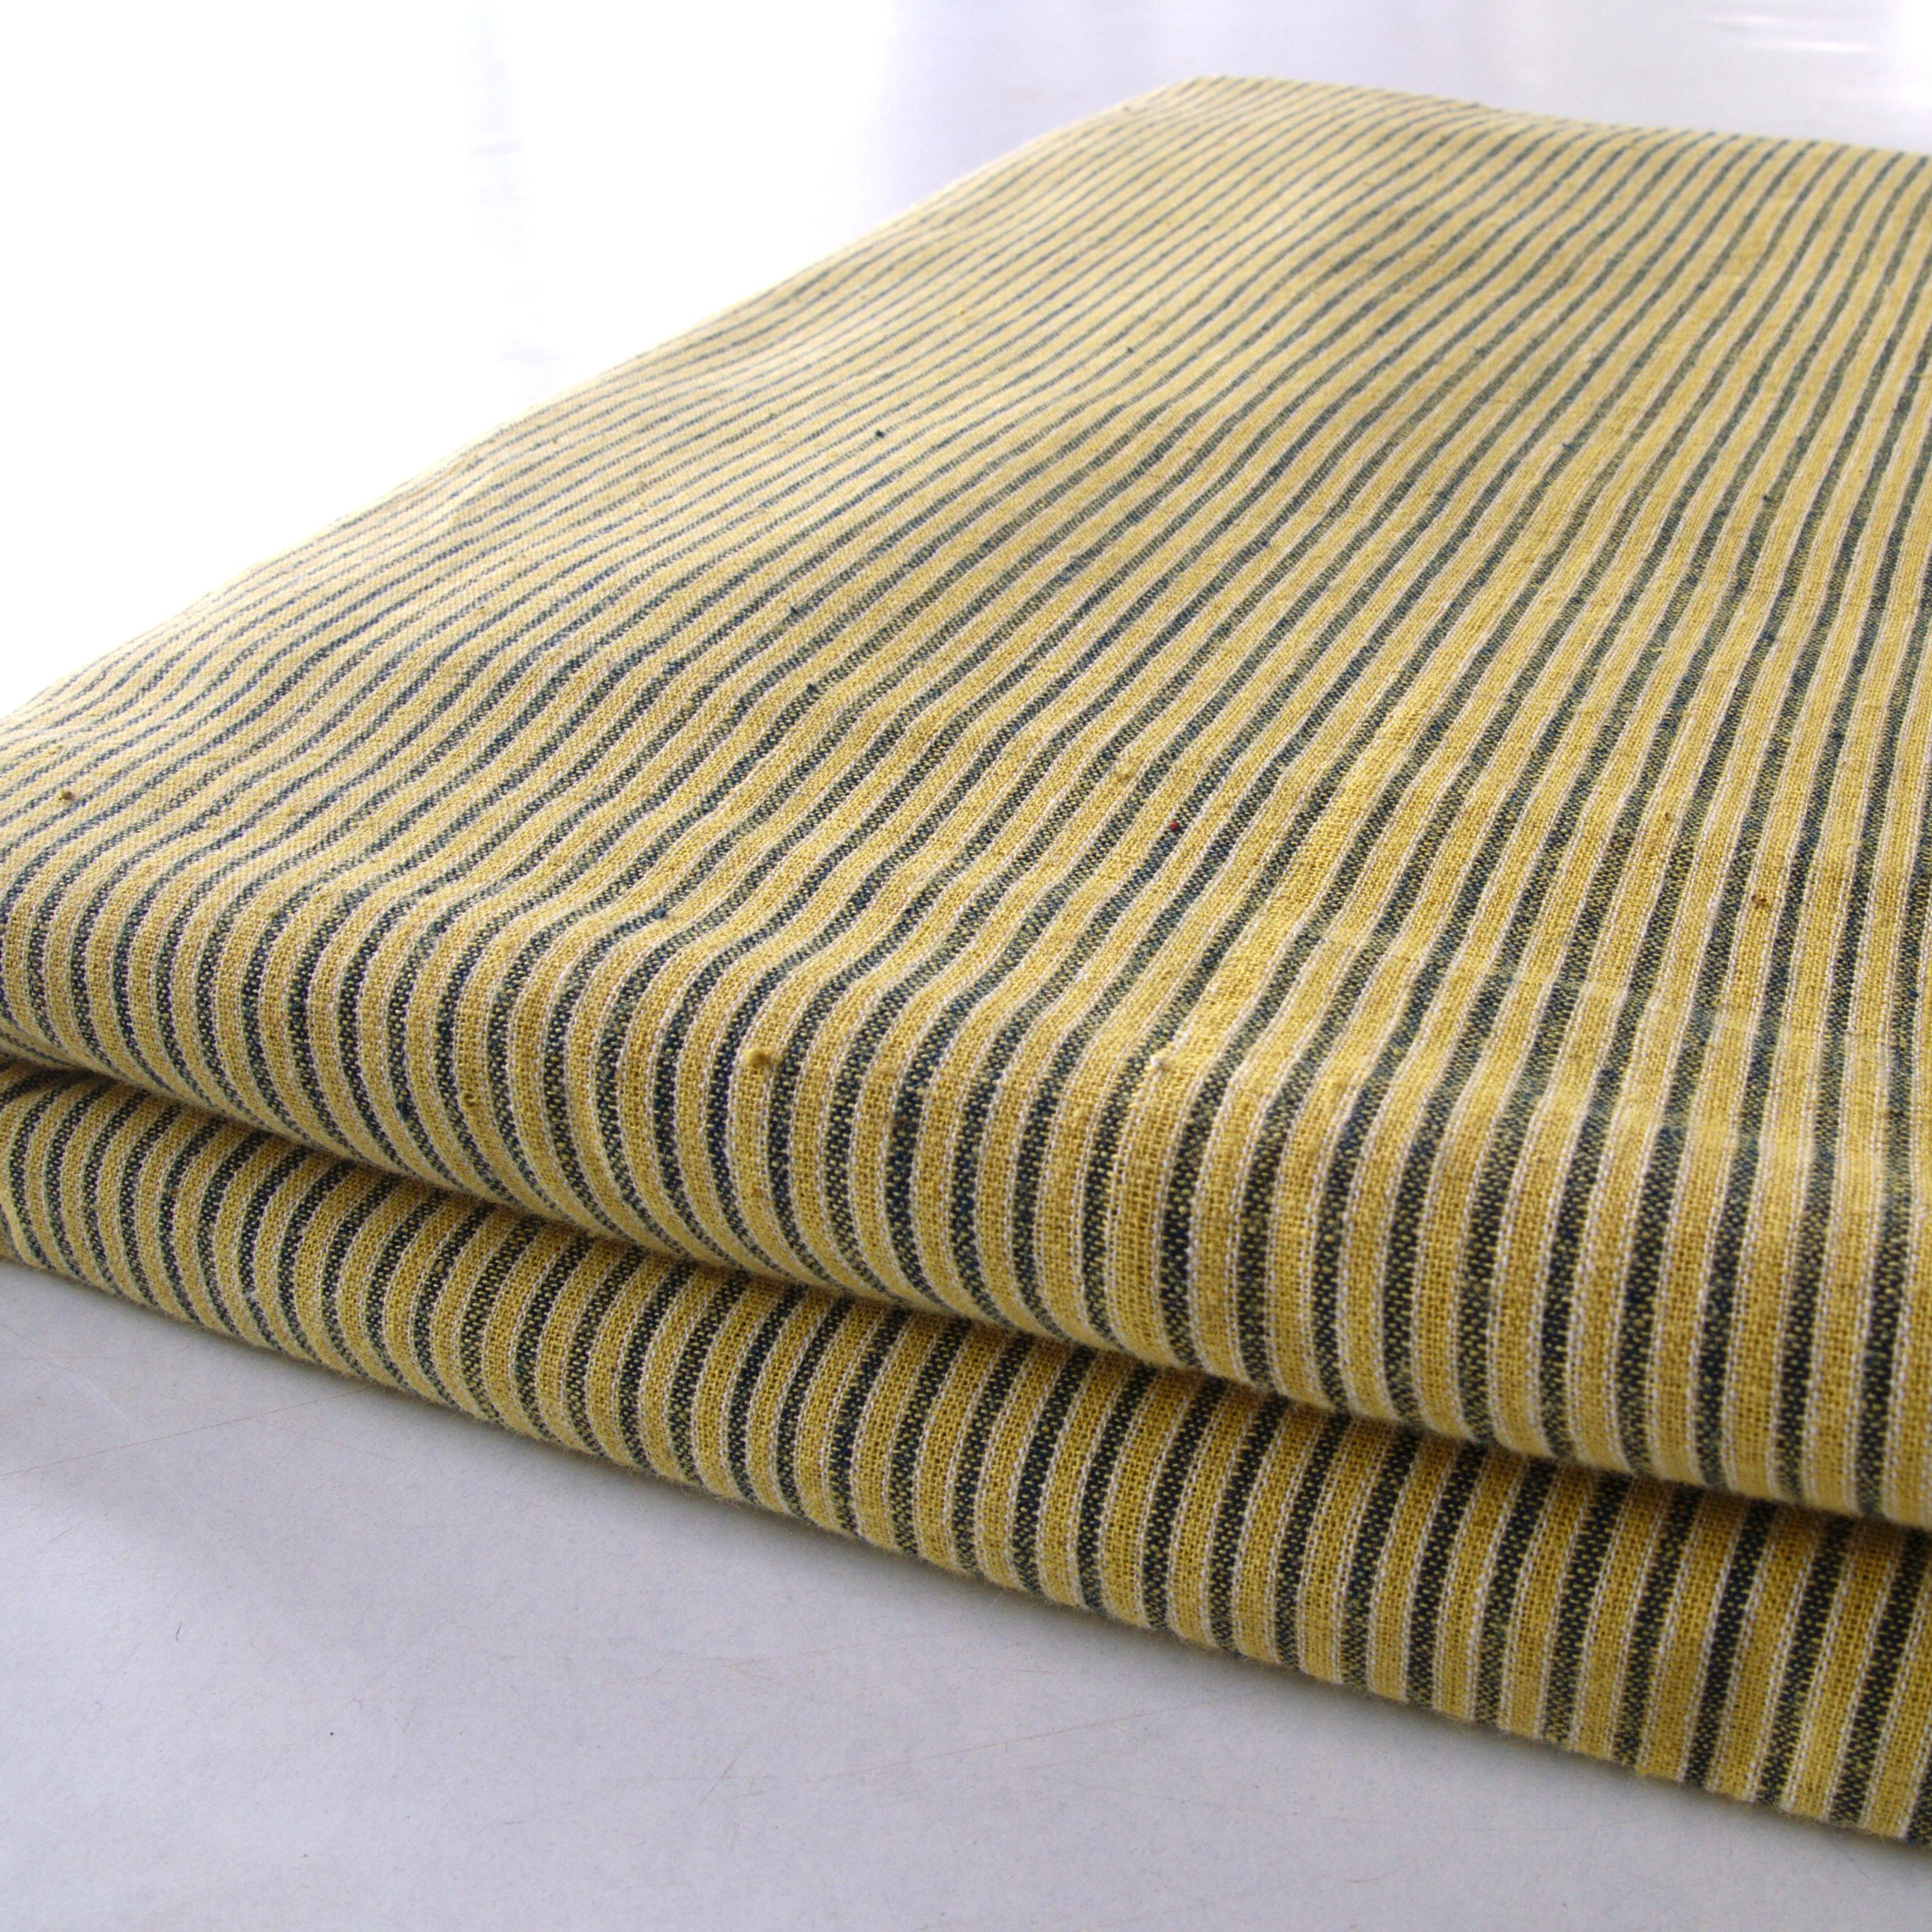 100% Handloom Cotton - Stripes - Pomegranate Yellow Warp & Weft, White and Indigo Warp - Bolt